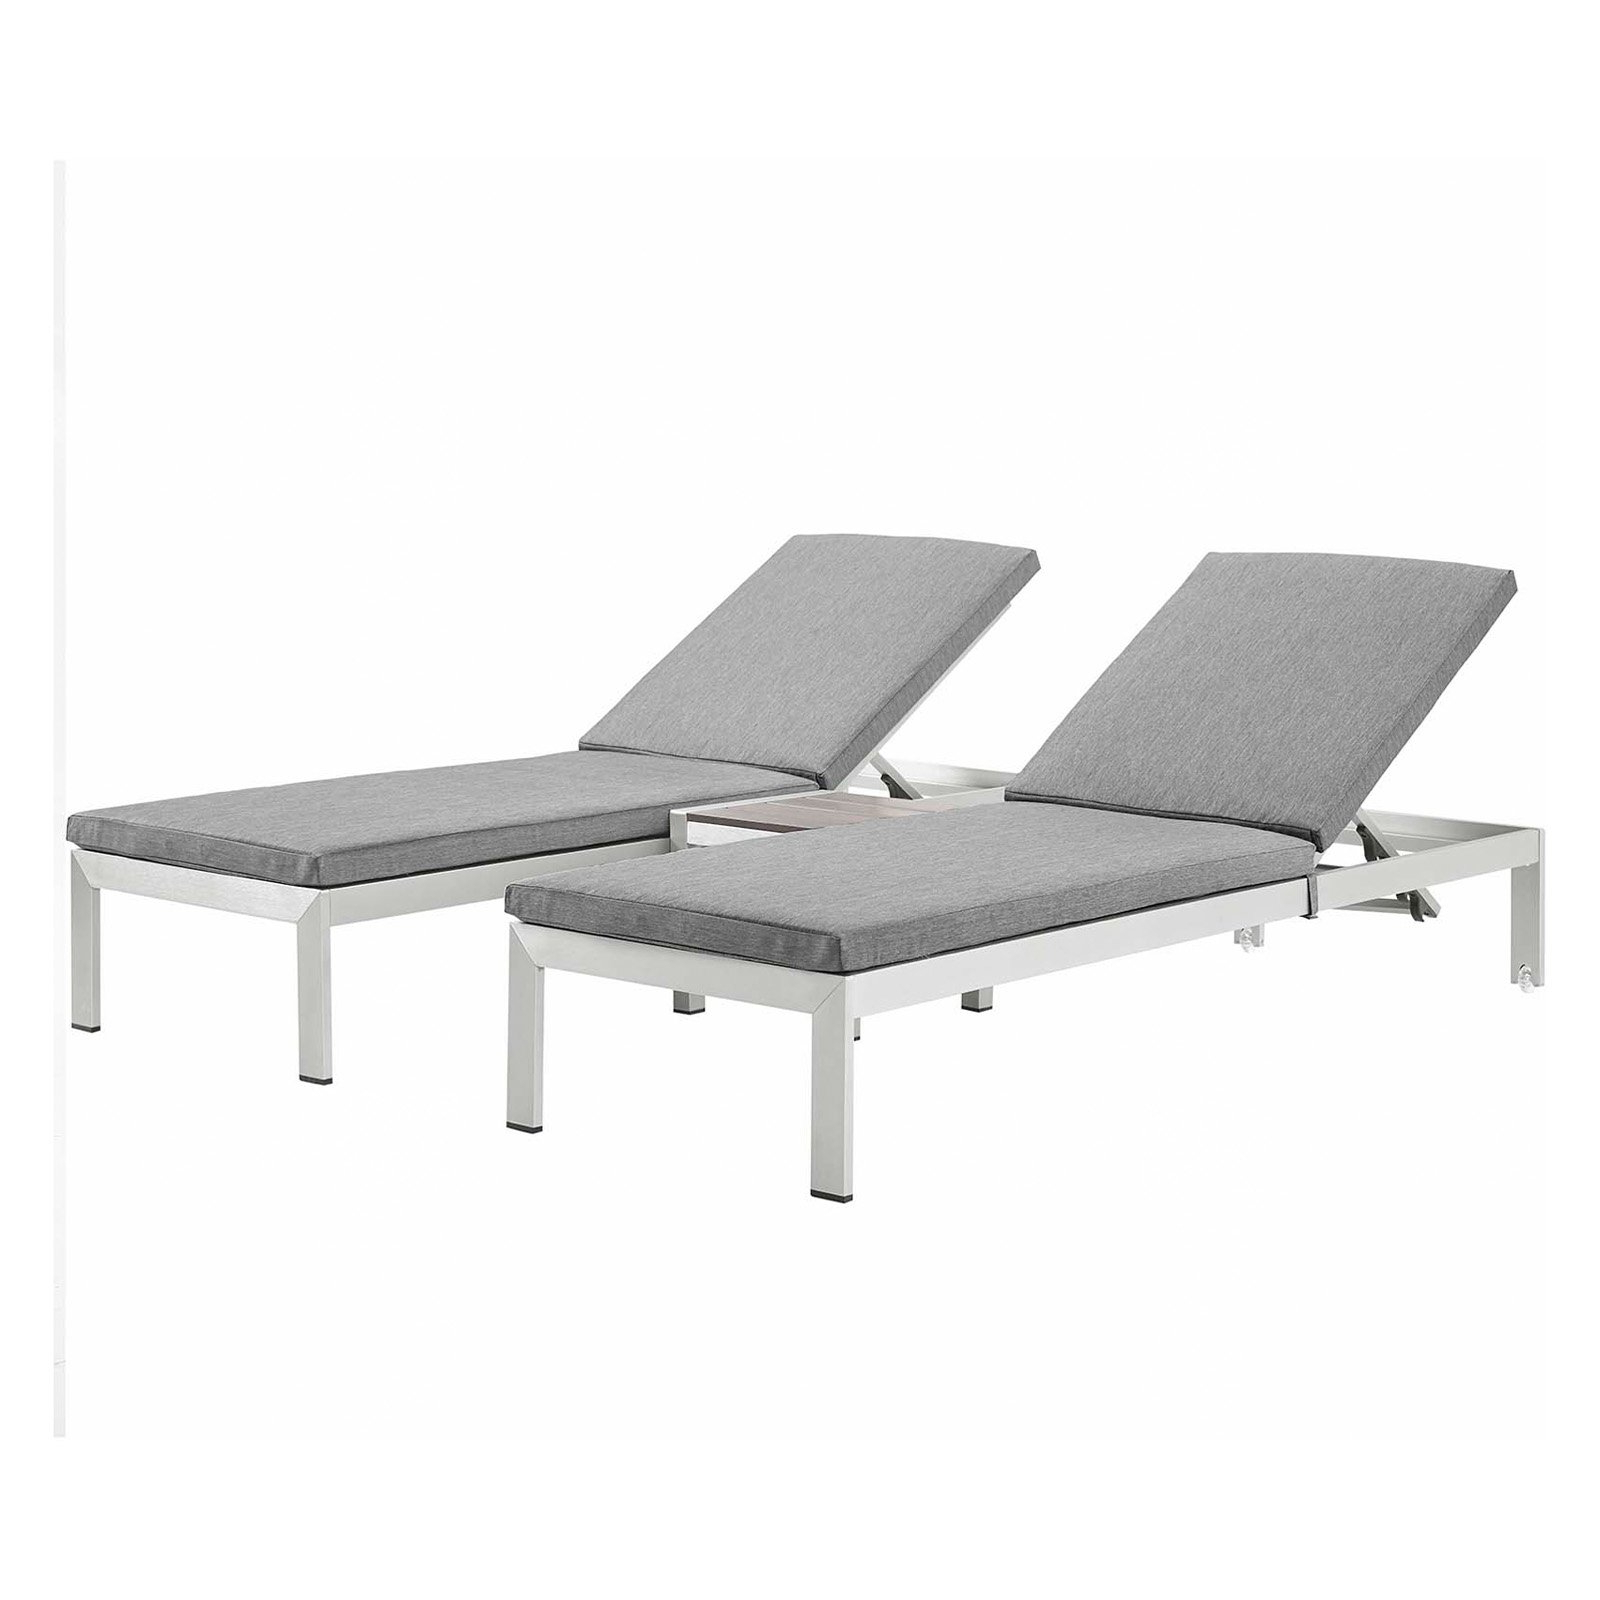 Current Shore Alumunium Outdoor 3 Piece Chaise Lounger Sets With Regard To Modway Shore 3 Piece Aluminum Outdoor Patio Chaise Lounge (View 5 of 25)